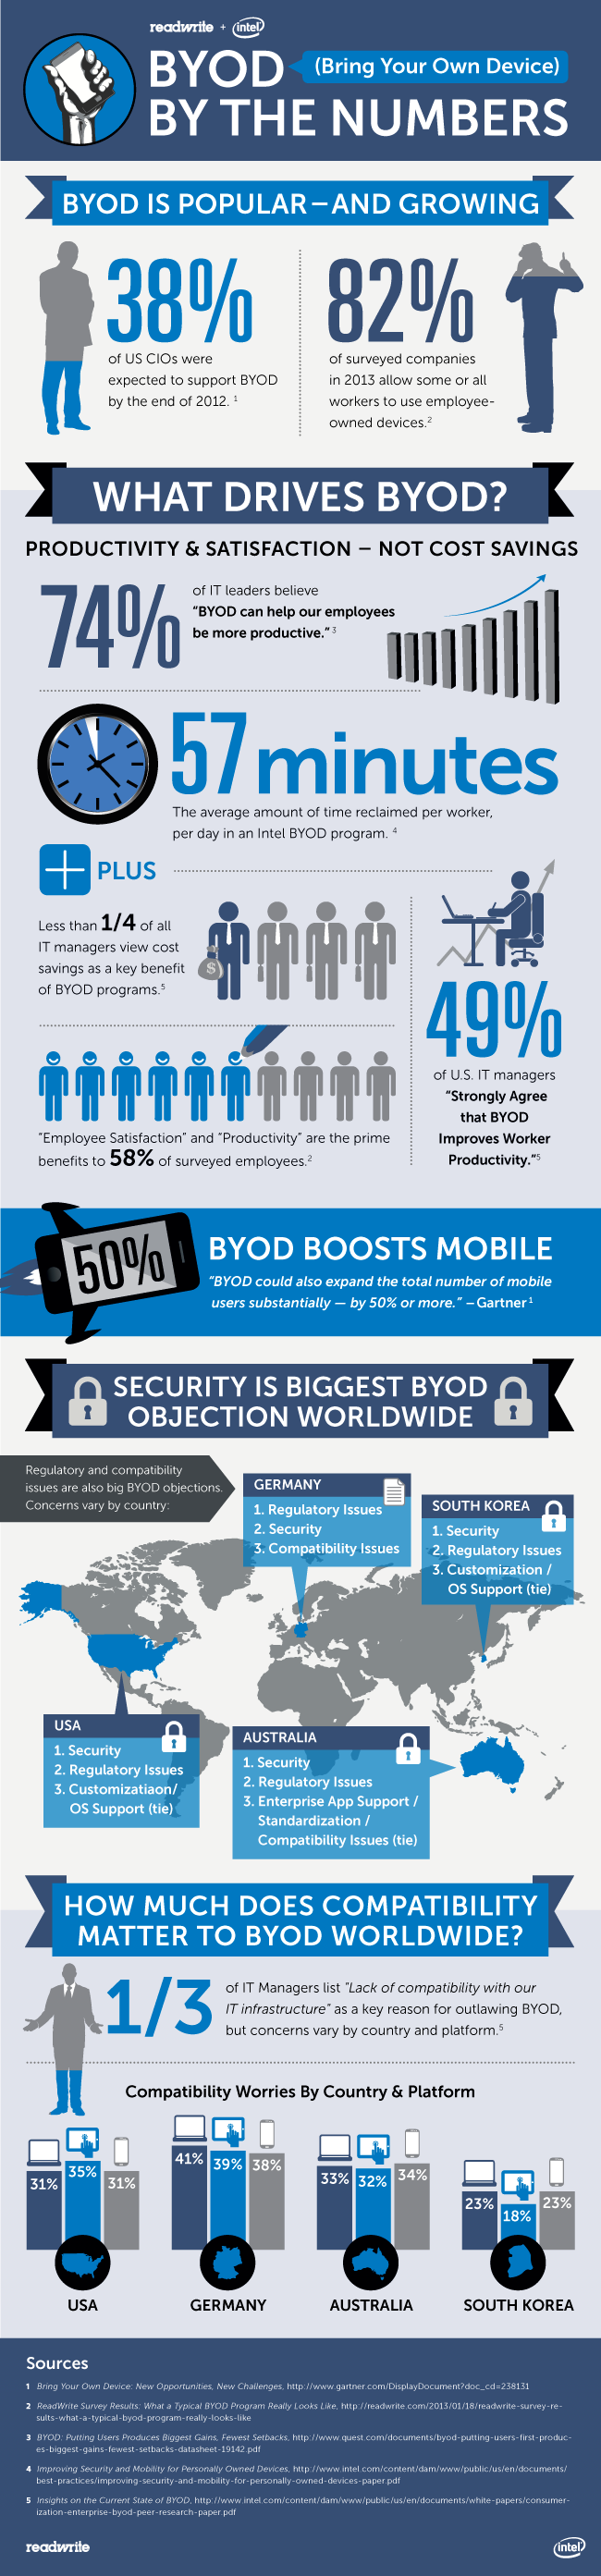 BYOD By The Numbers [Infographic]